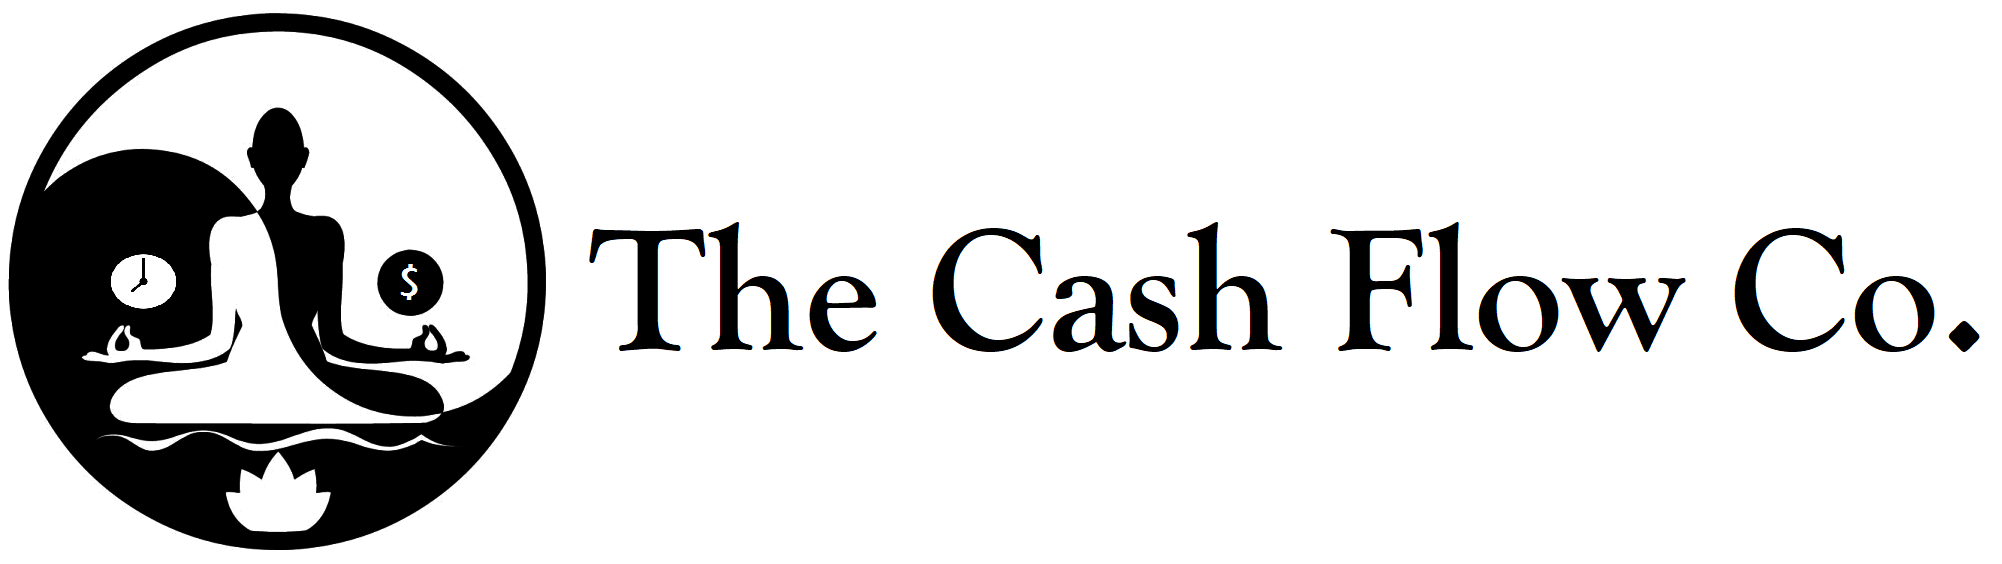 The Cash Flow Co.